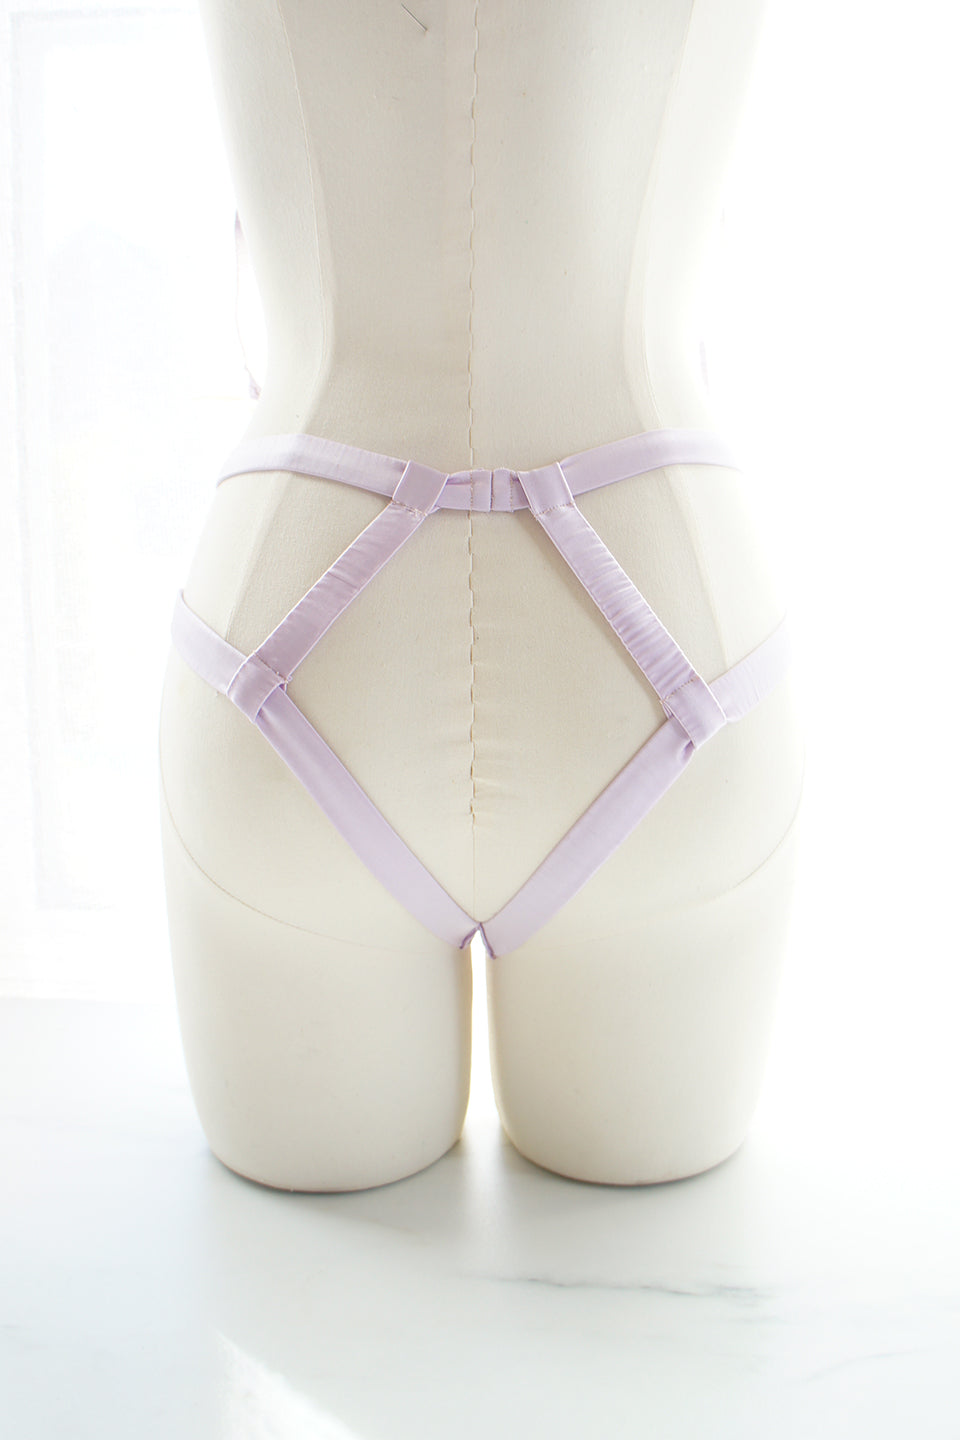 Elektra Caged Ouvert Panty Lavender Silk